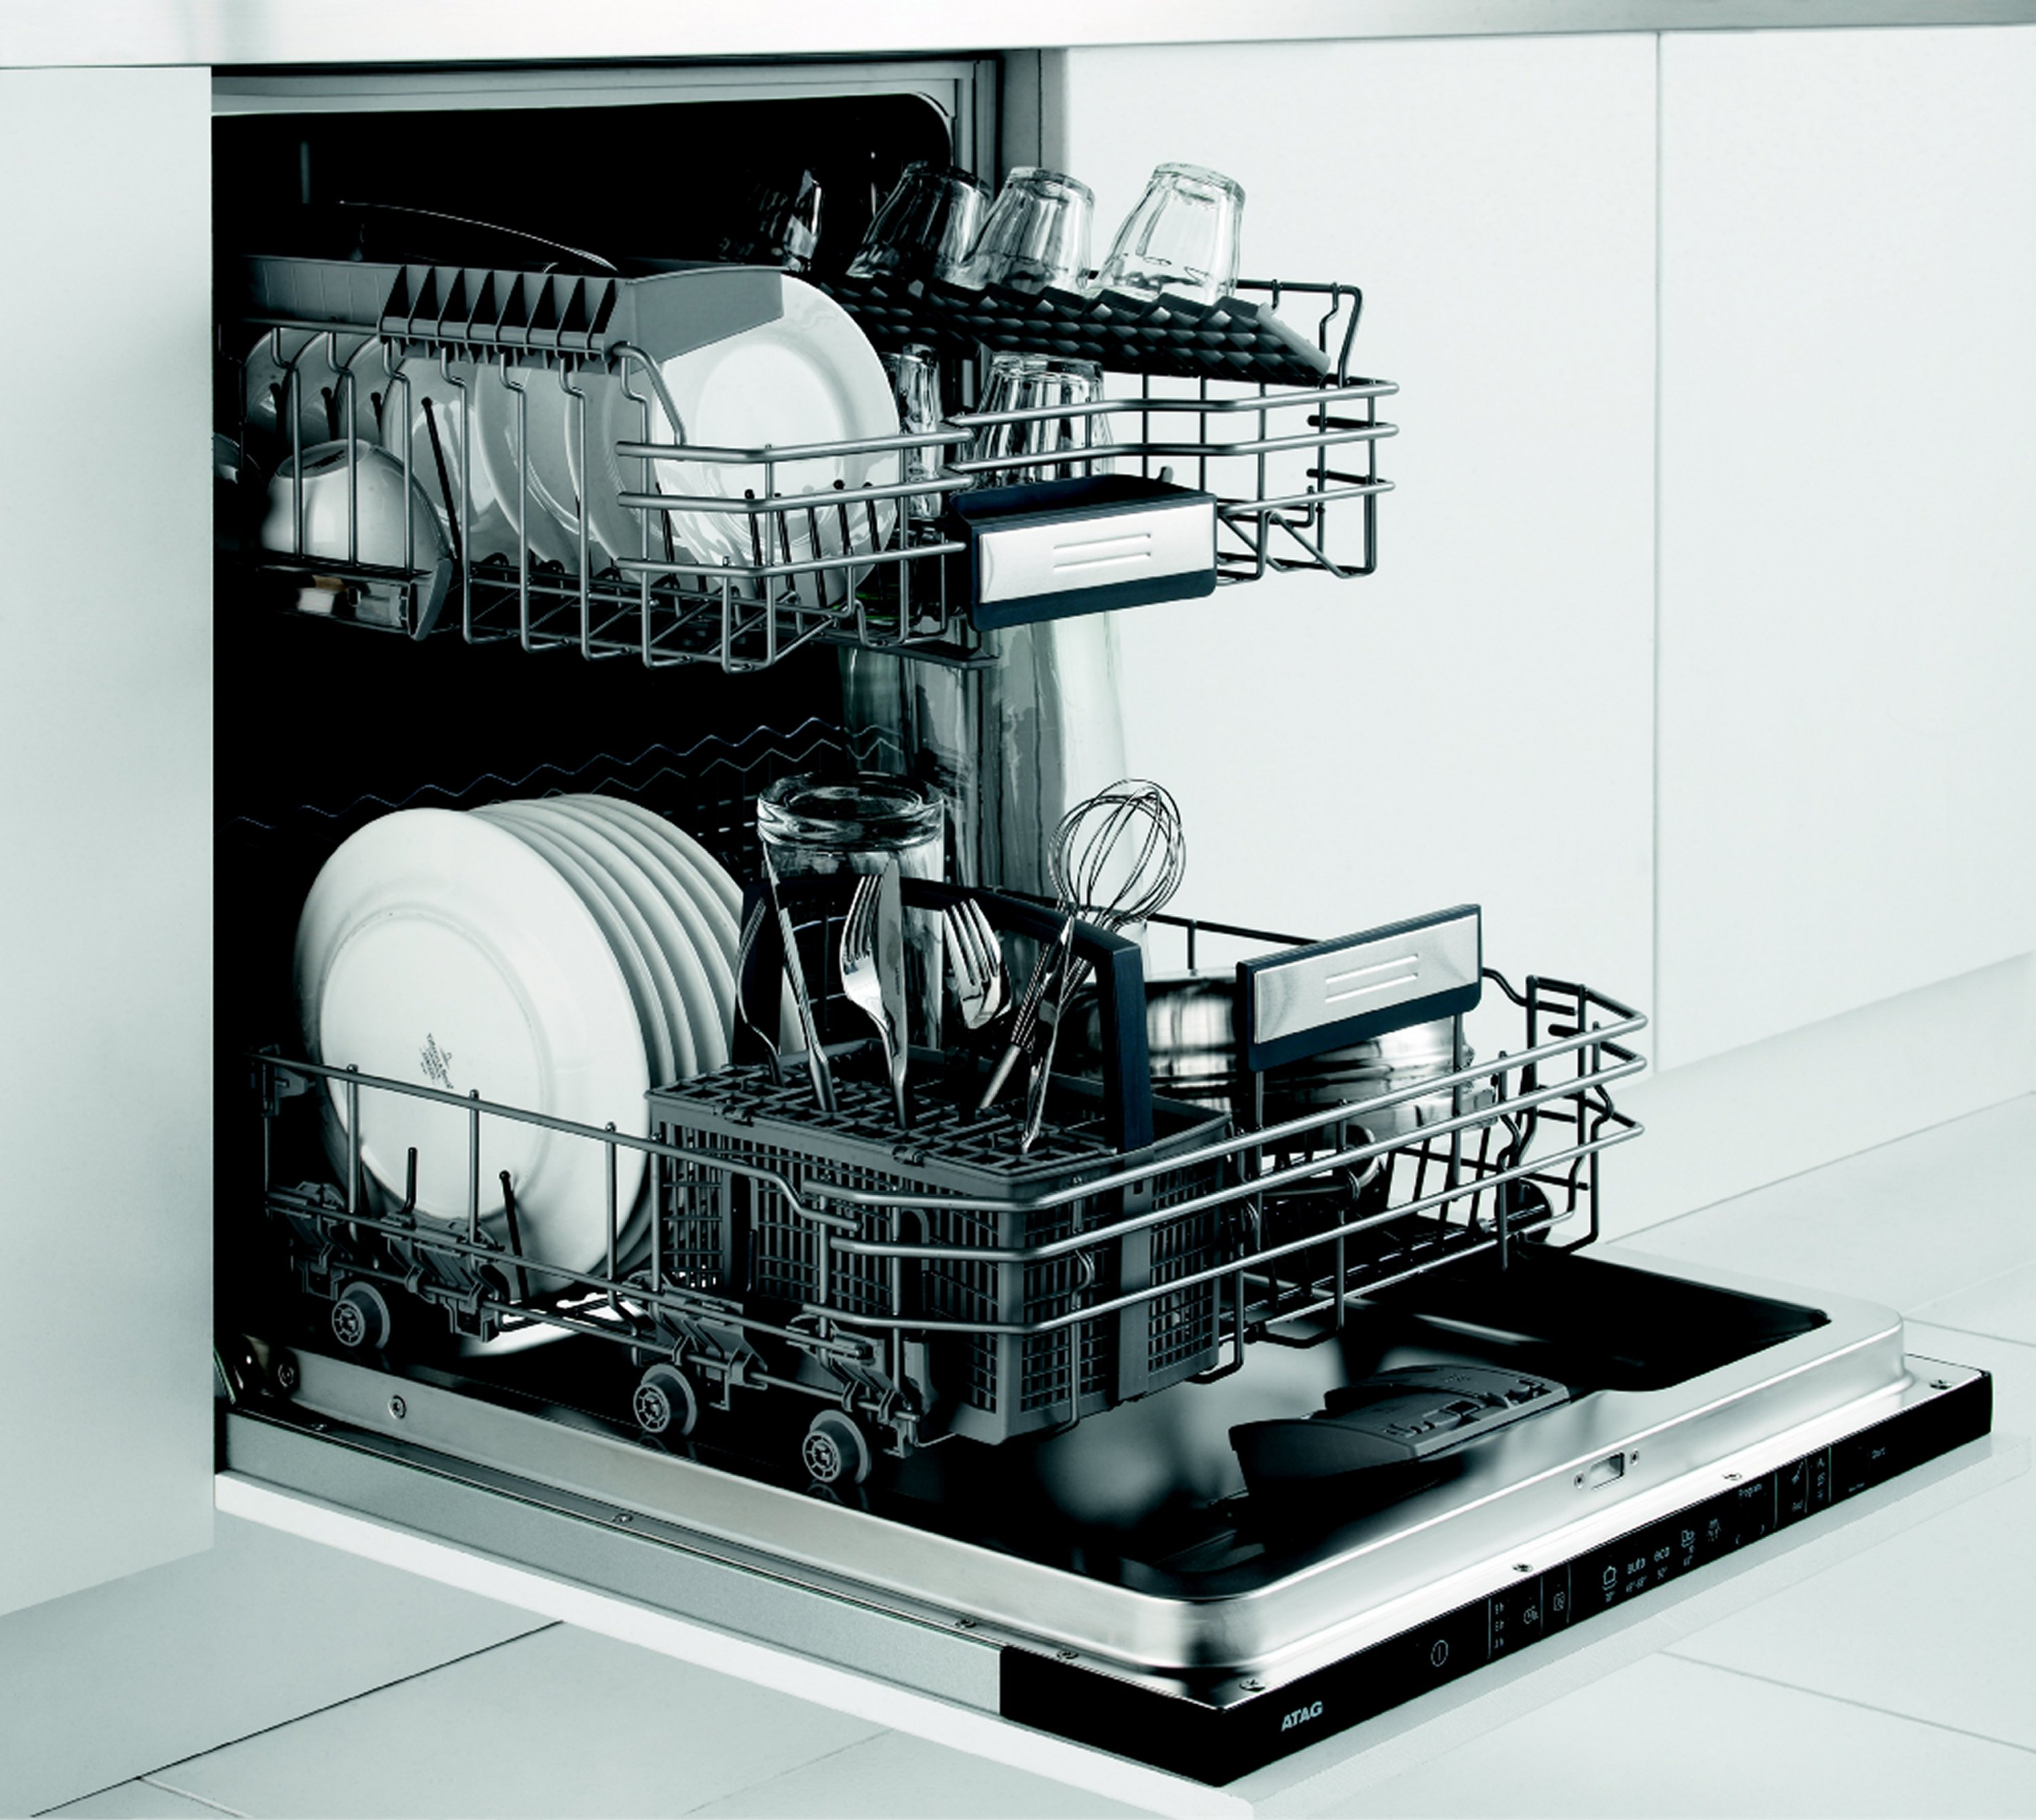 dishwasher repair in gurgaon